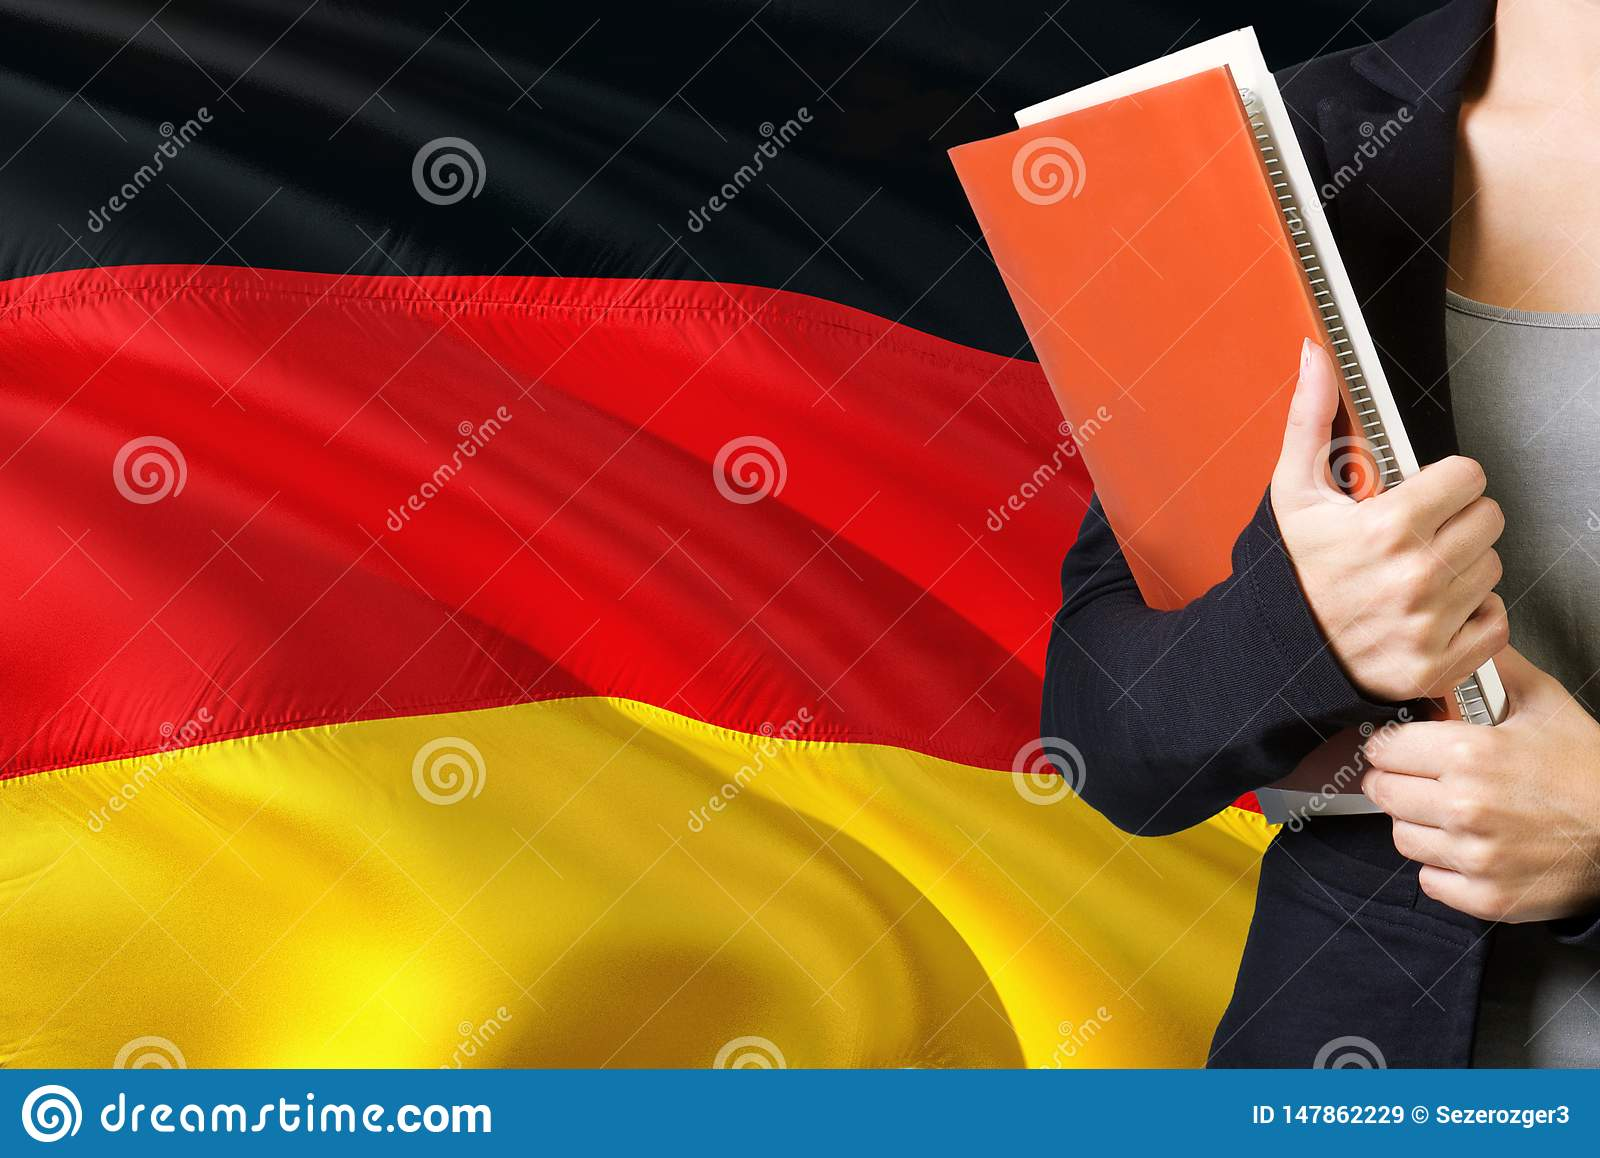 Learning German language concept. Young woman standing with the Germany flag in the background. Teacher holding books, orange